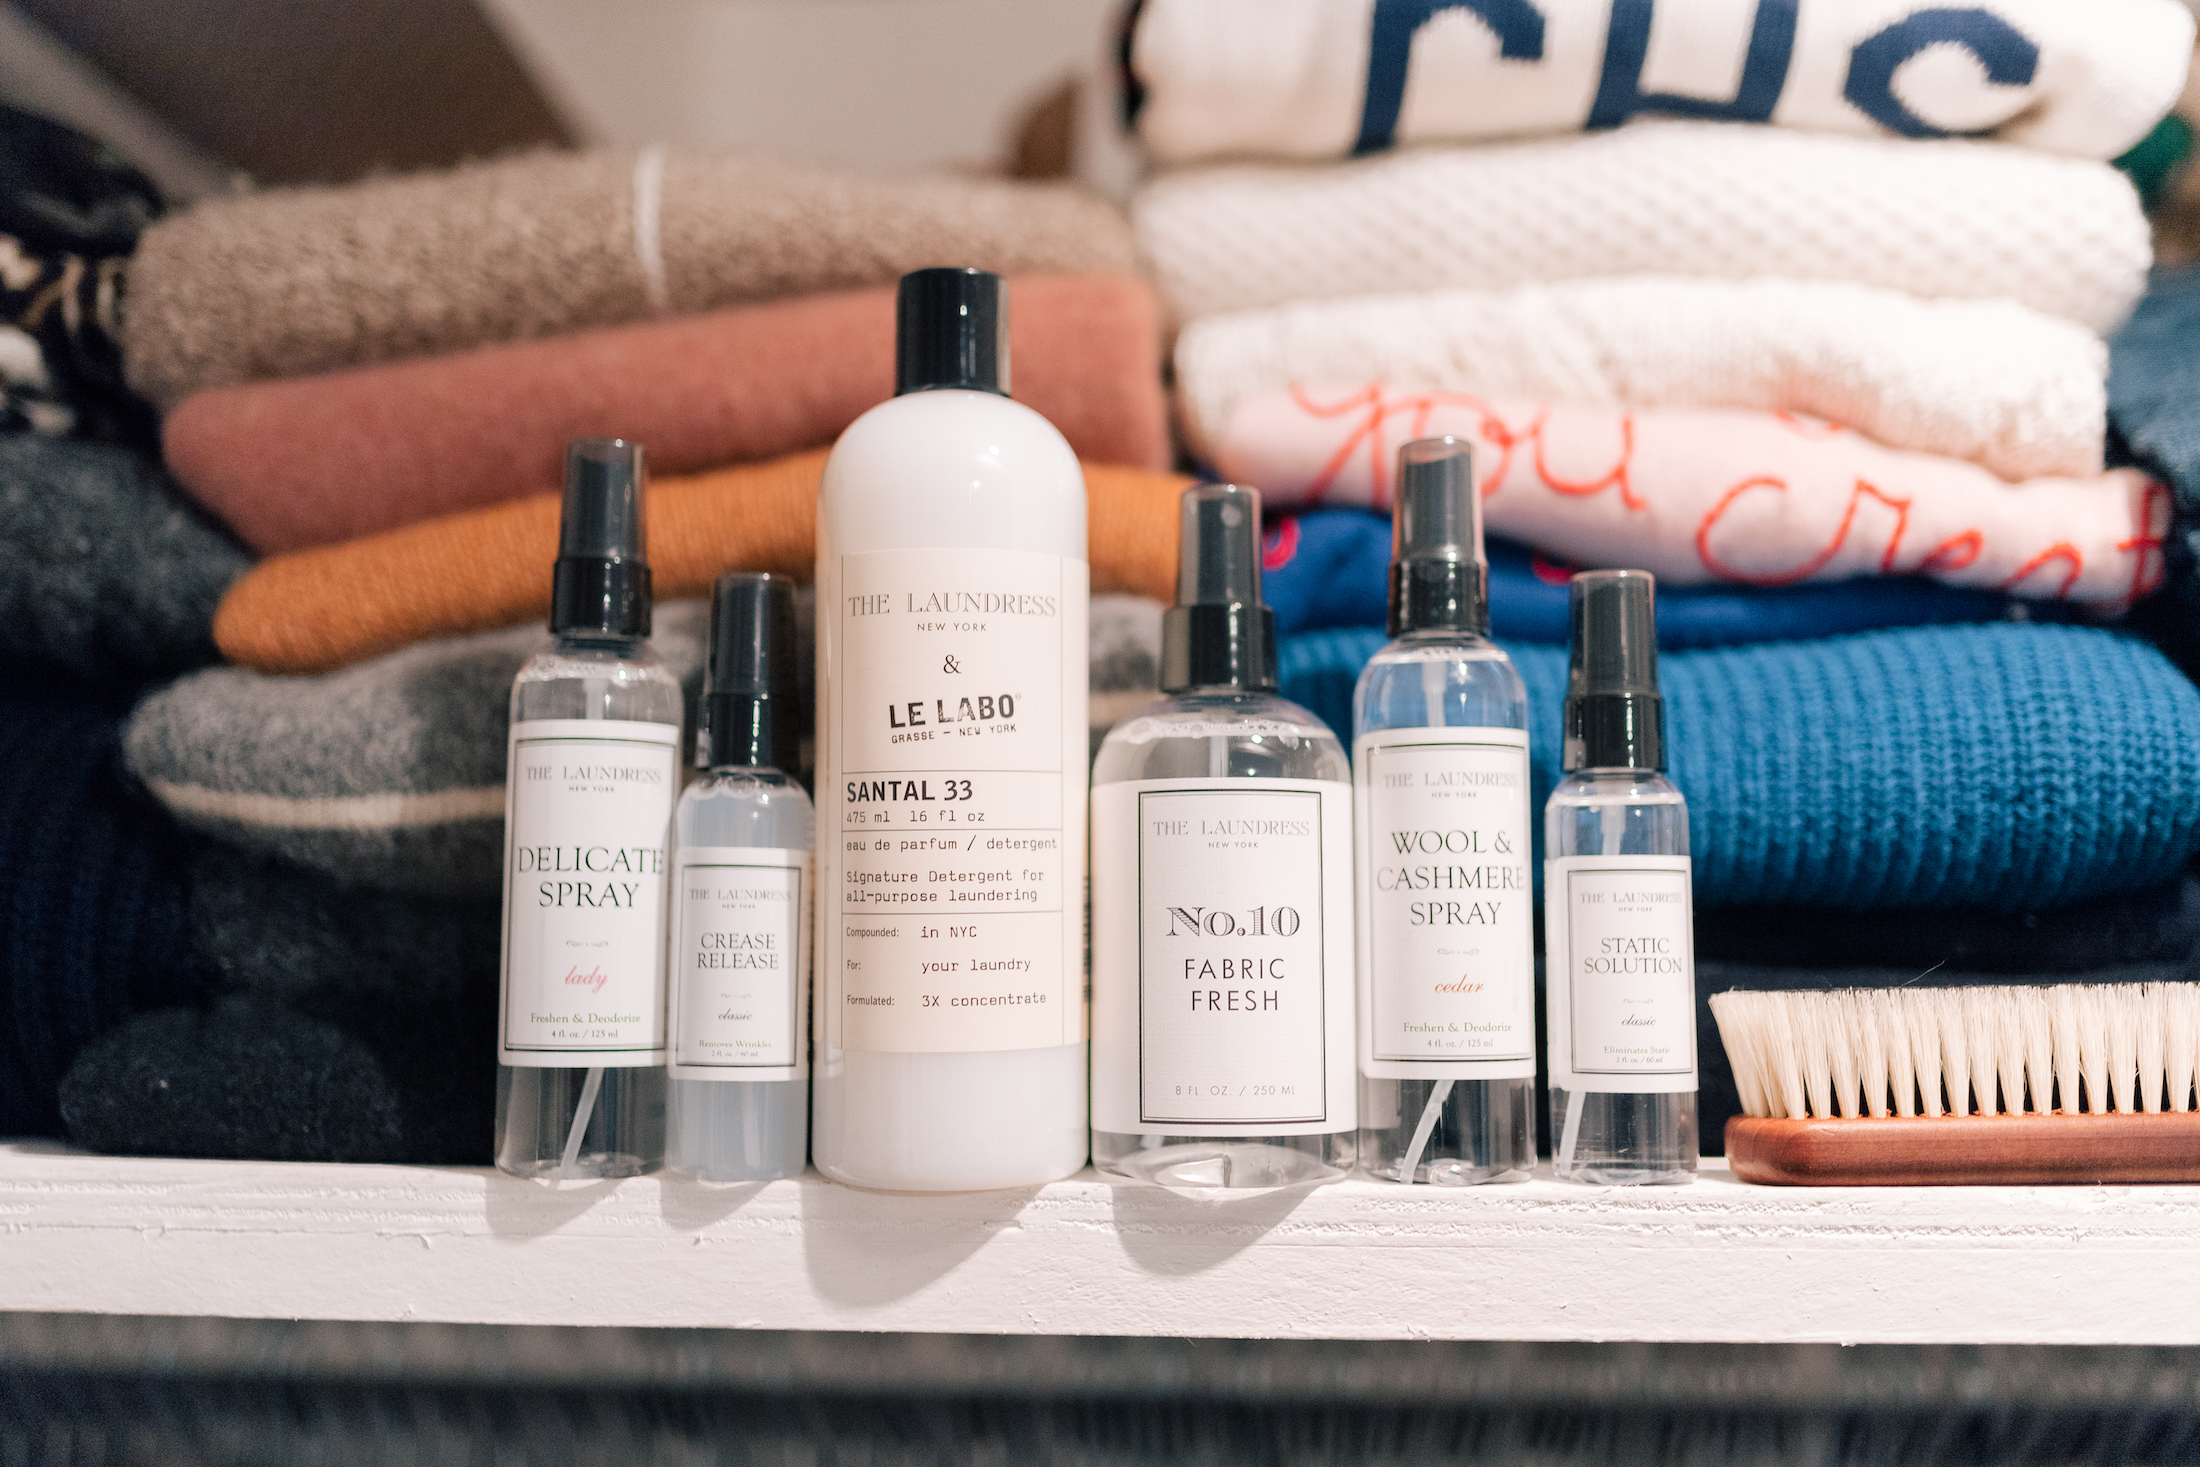 A few of my Laundress go-to products:Delicate Wash,Crease Release, Santal 33 Detergent(FAVORITE!), Wool & Cashmere Spray and Static Solution. I also really love theirCashmere Brush(for removing lint + pills) +Lavender Pouches!